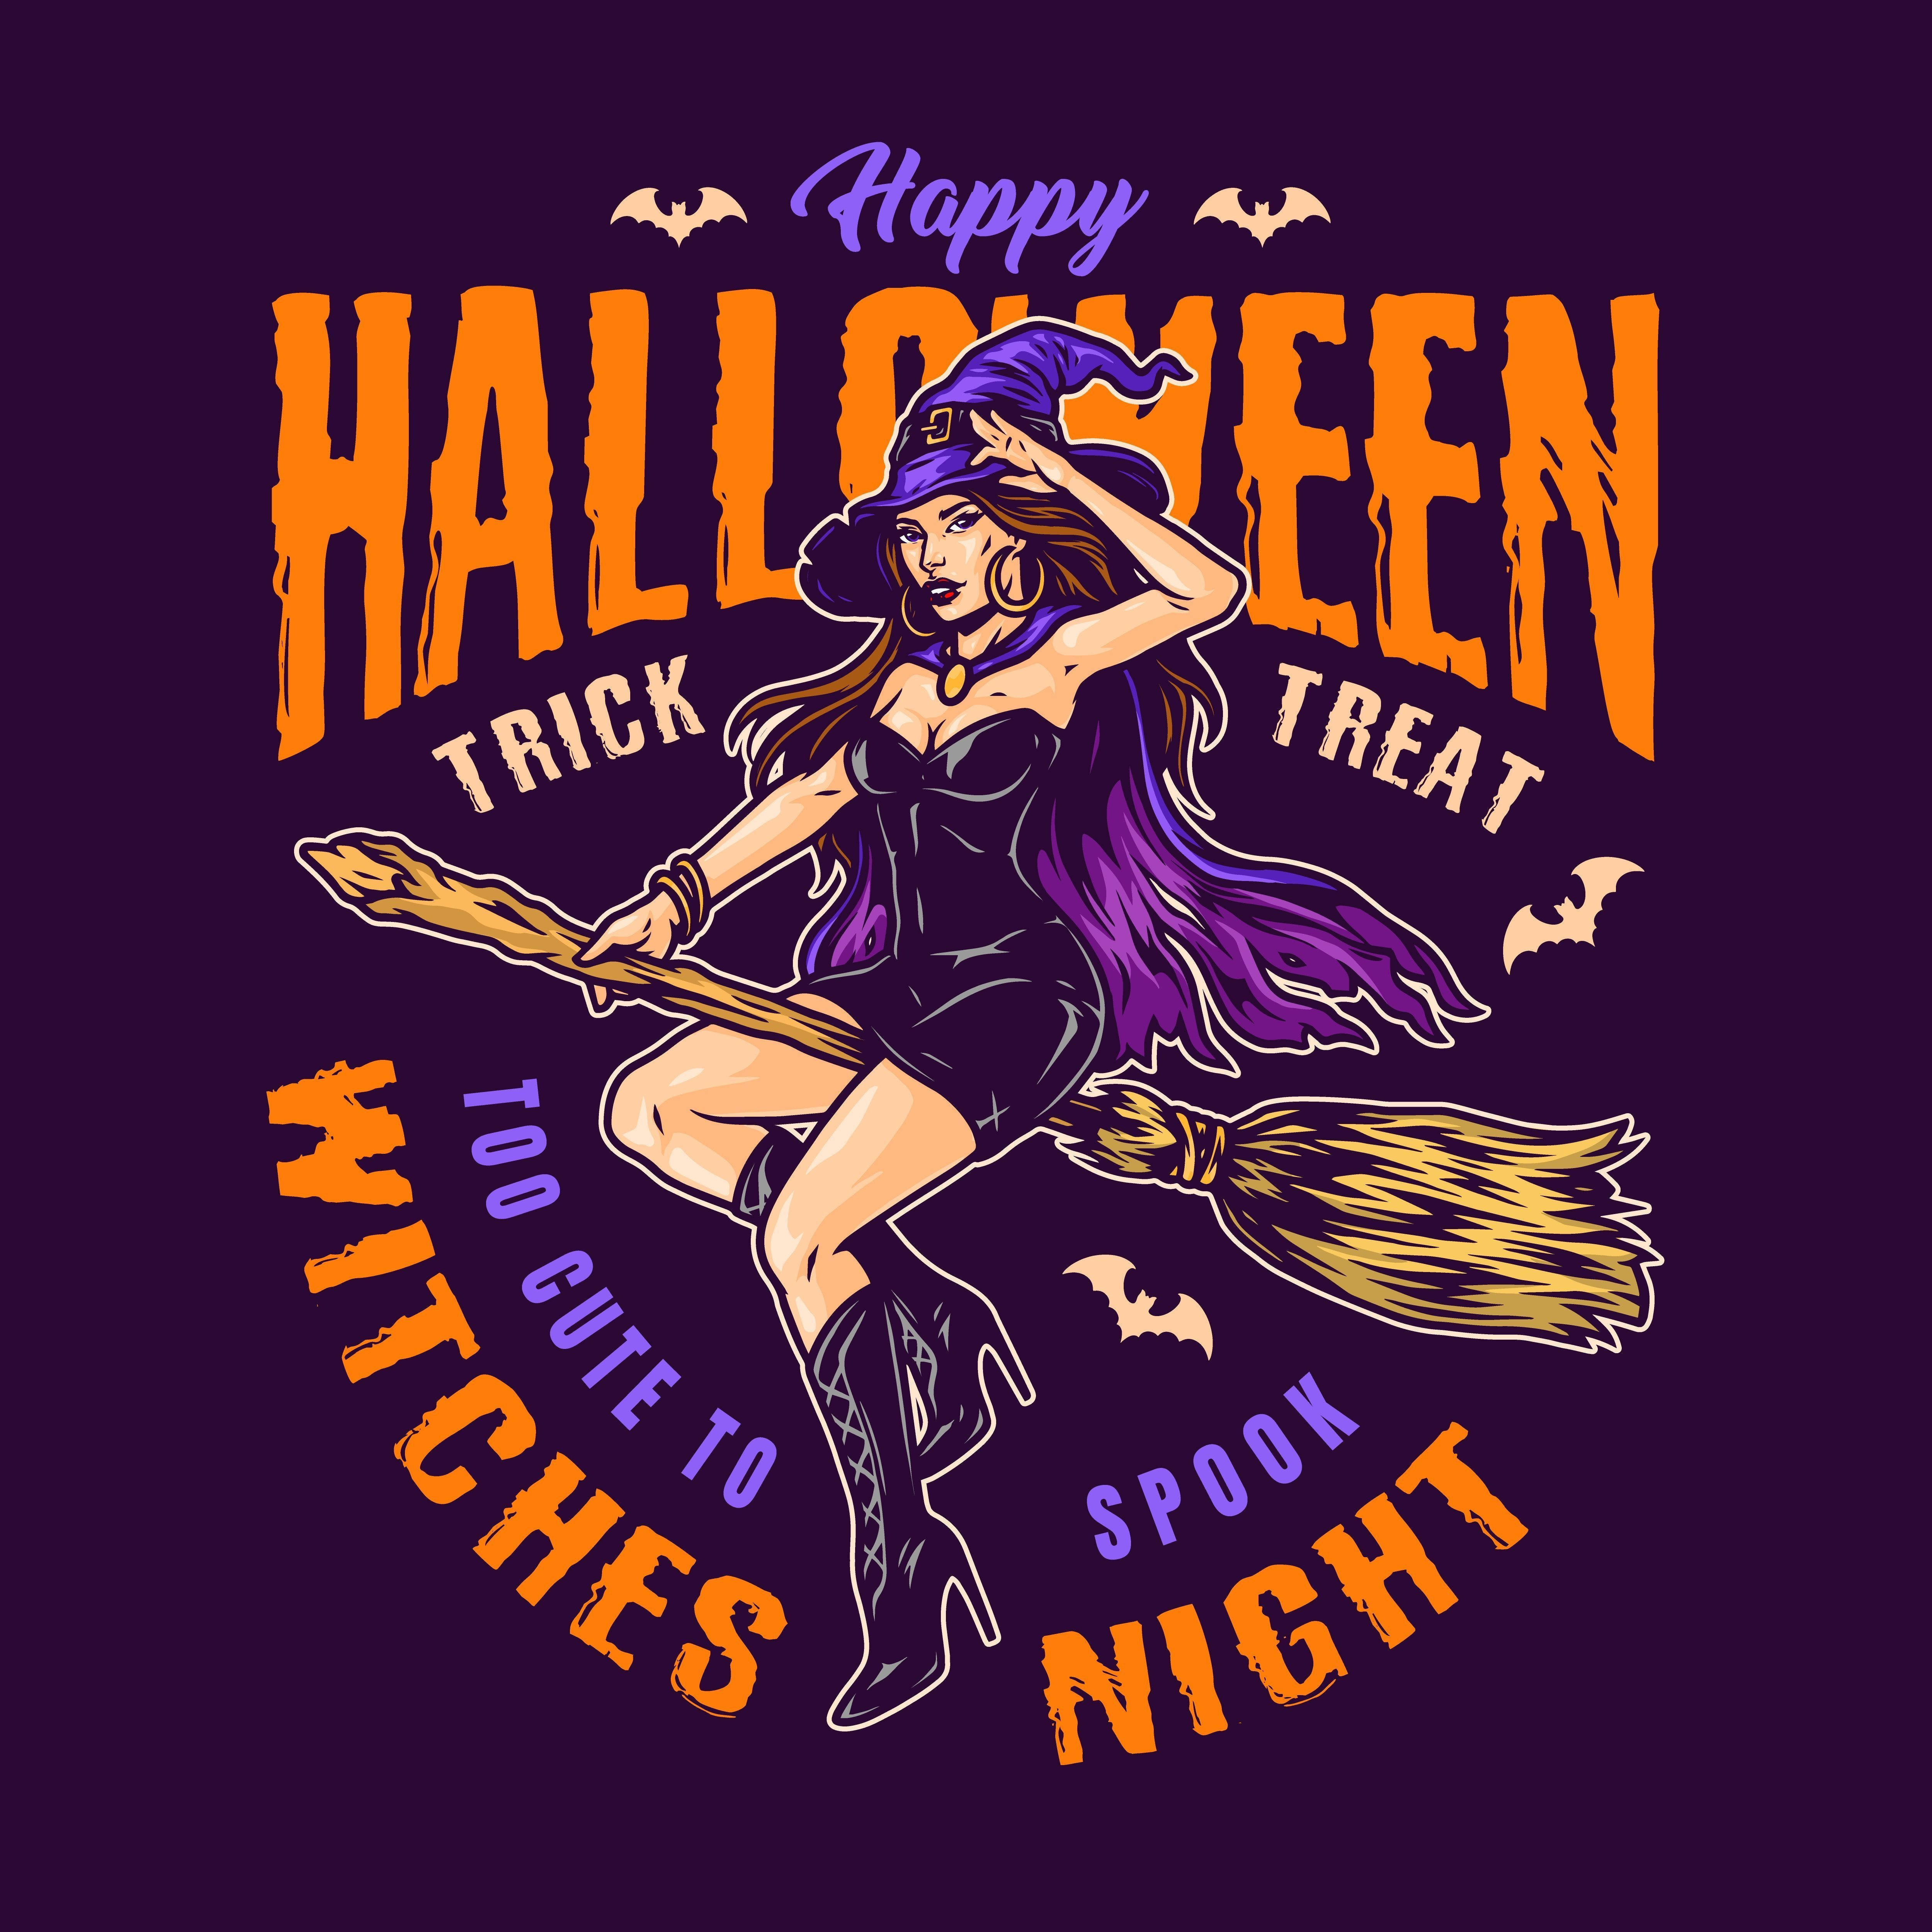 Halloween Sexy Witch on a broom vector illustration from 21 Halloween t-shirt designs. 100% vector designs with editable texts. All halloween designs are ready to be printed. Happy Halloween 2020! #witch #sexy #illustration #halloween #halloween2020 #halloweenideas #halloweenaesthetic #vectorillustration #halloweencostume #tshirtdesign #appareldesign